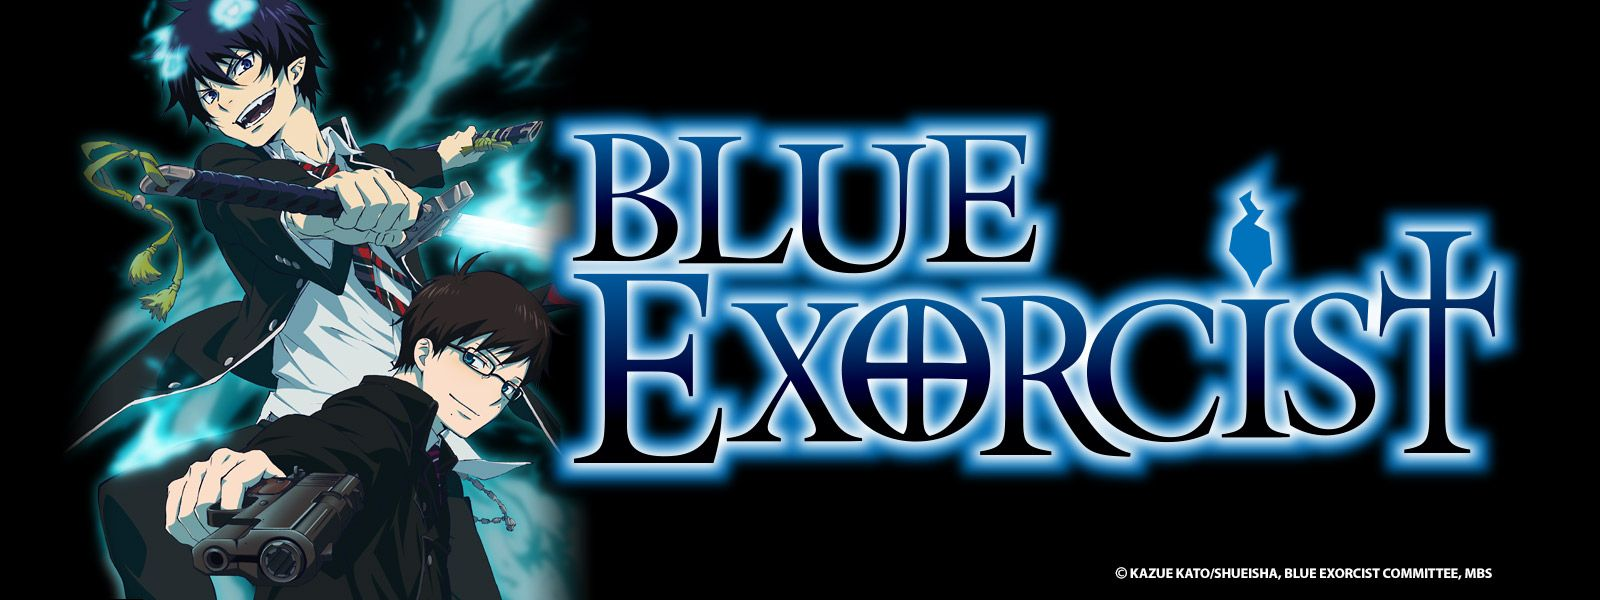 Blue Exorcist is an anime , about a dude who meets a demon